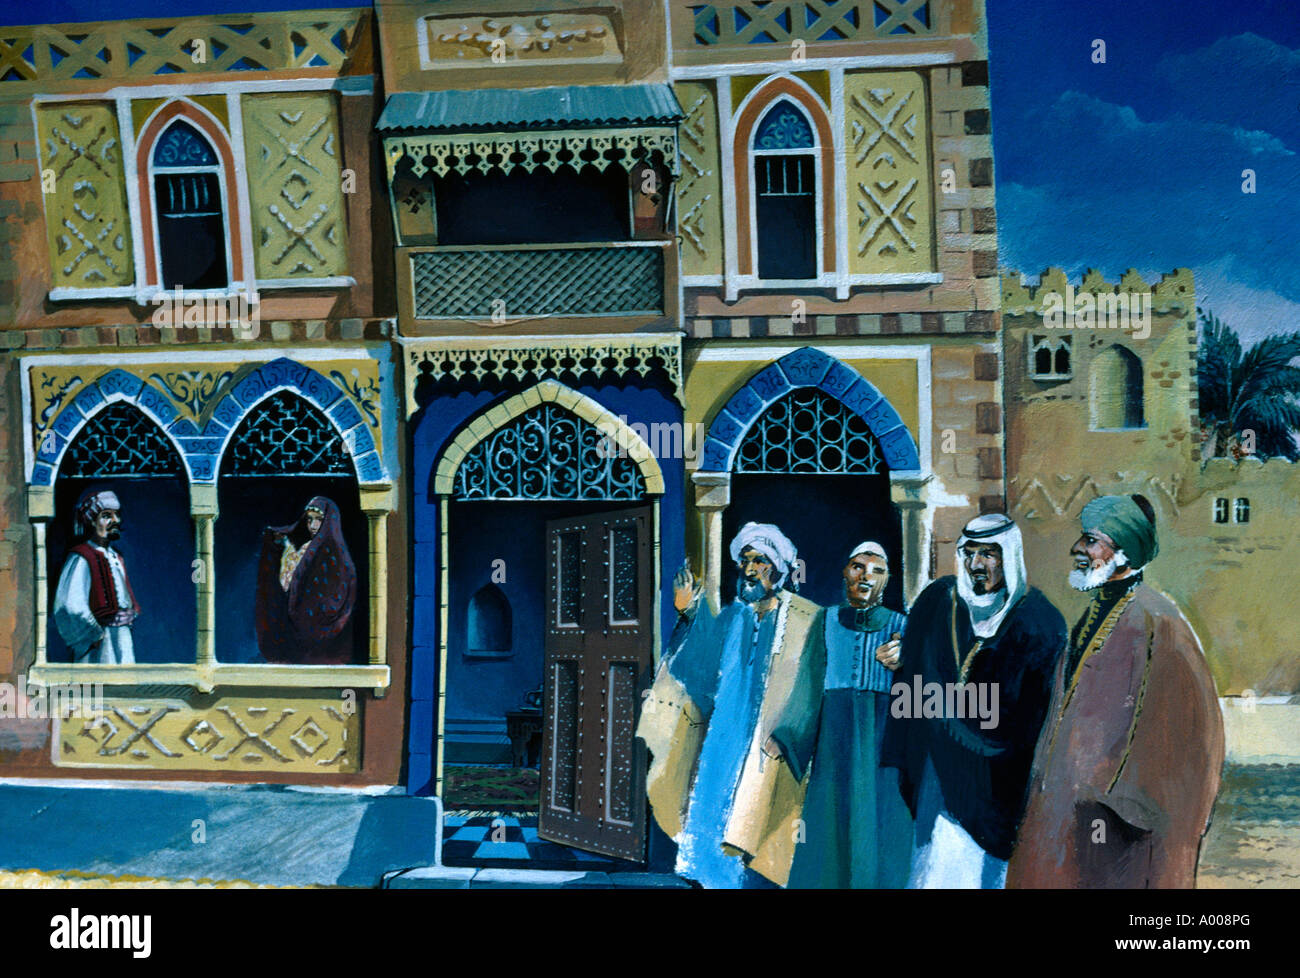 Bedouin Arab Stories From Eastern Tales Stock Photo